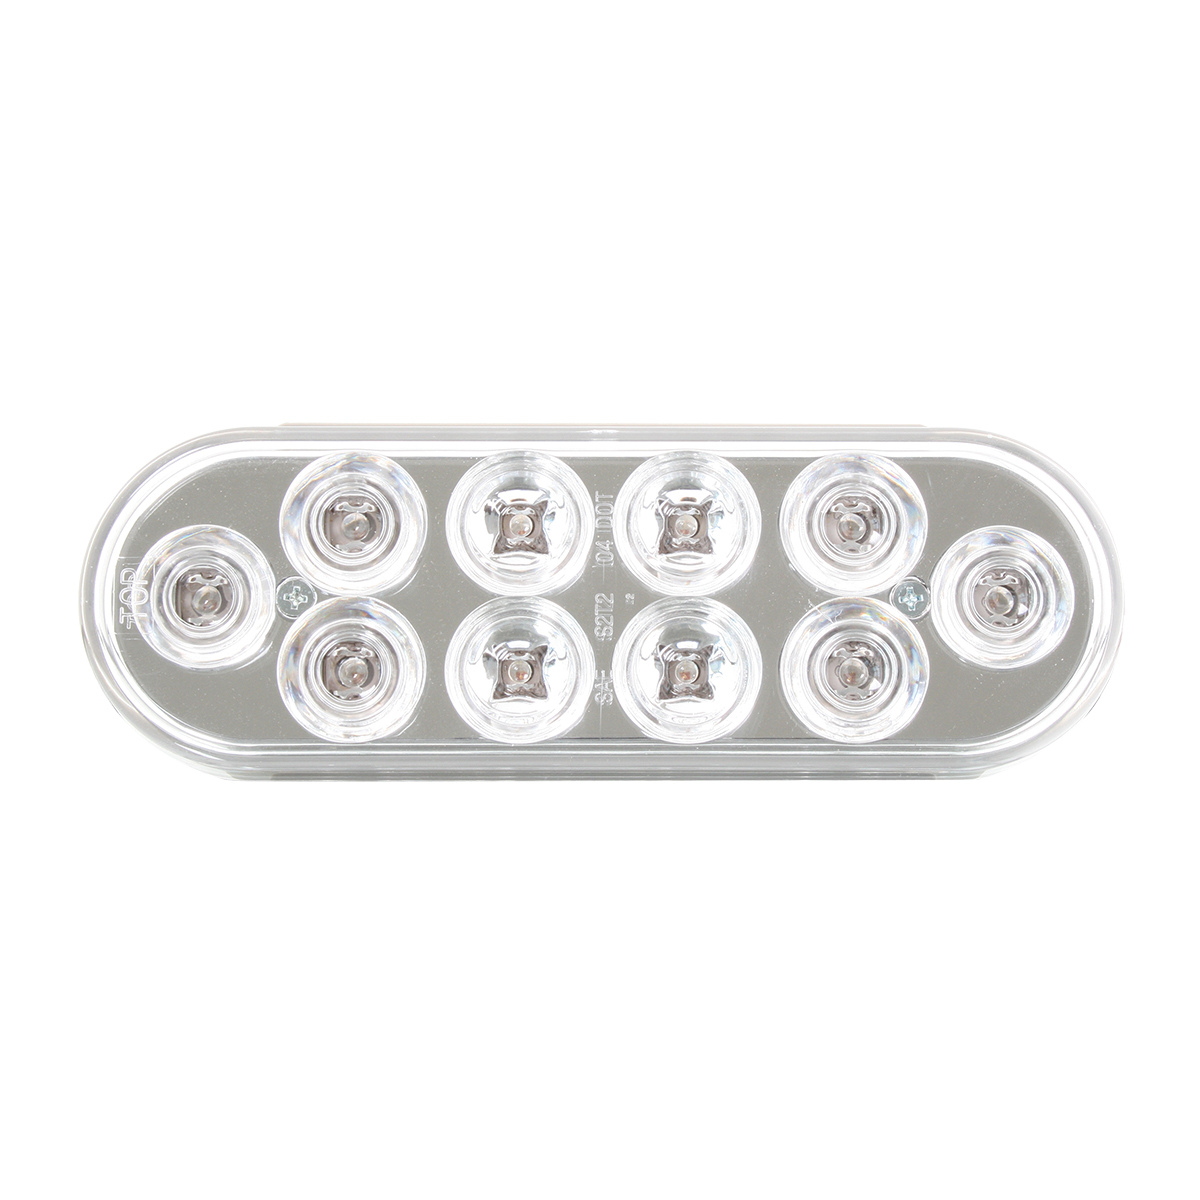 Oval Mega 10 Plus LED Light in Clear Lens